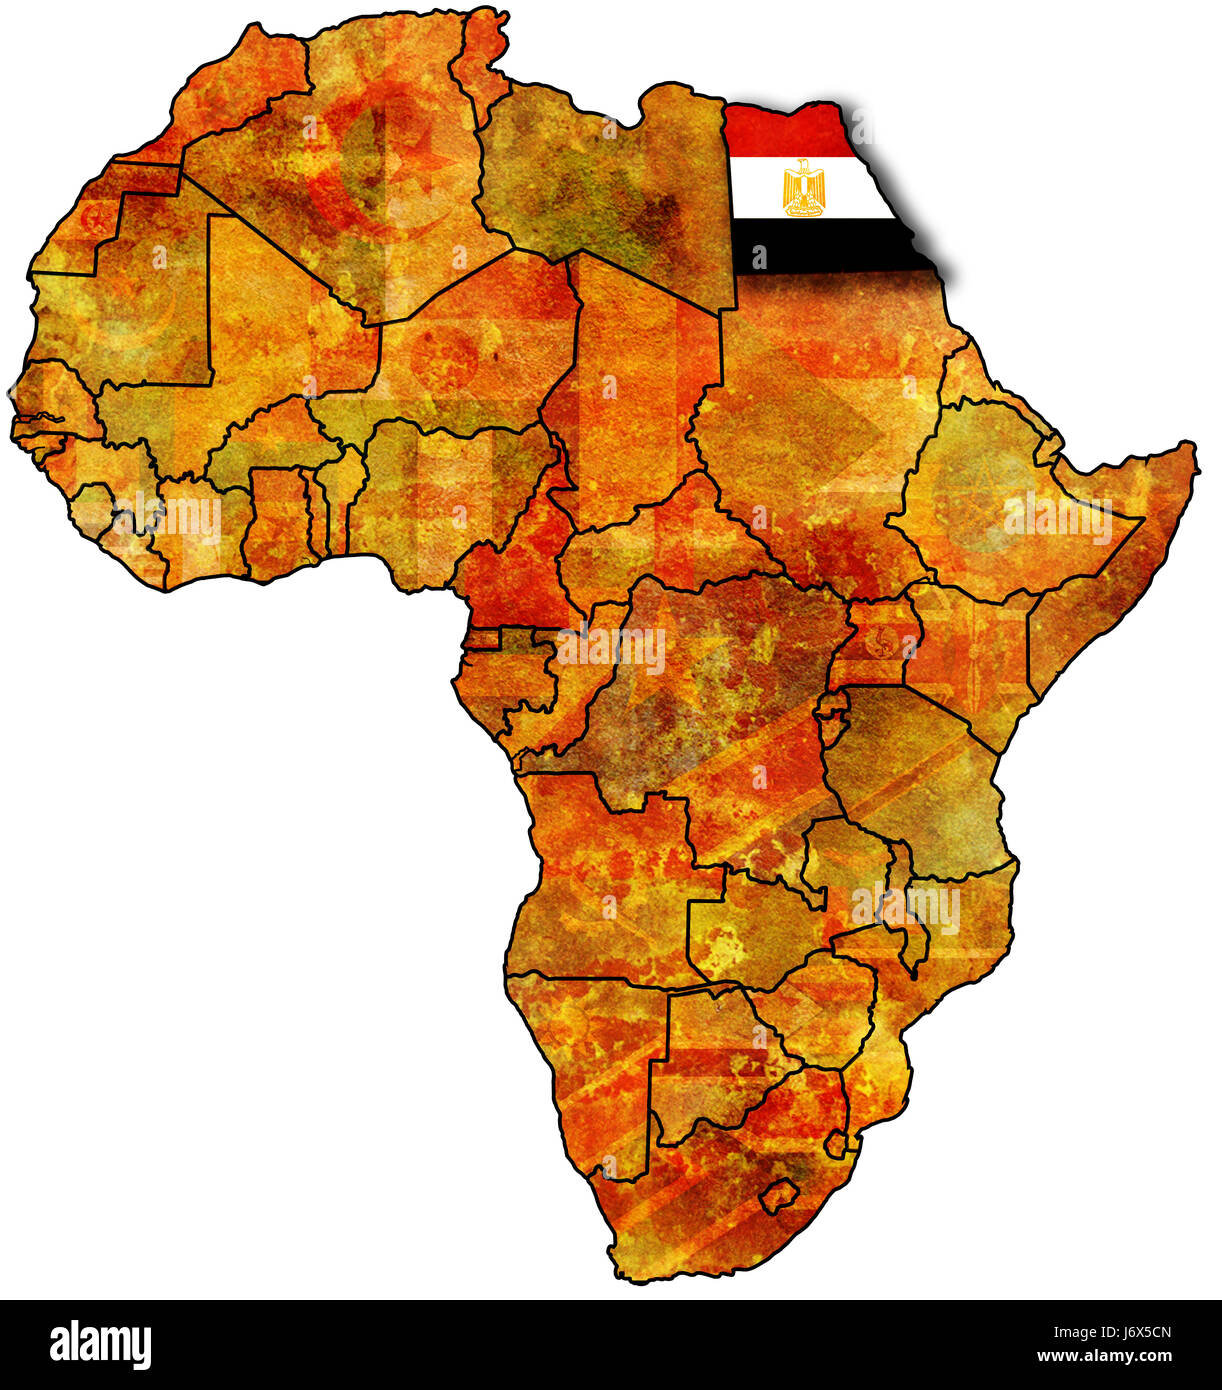 Egypt on africa map stock photo royalty free image 141945909 alamy egypt on africa map gumiabroncs Image collections